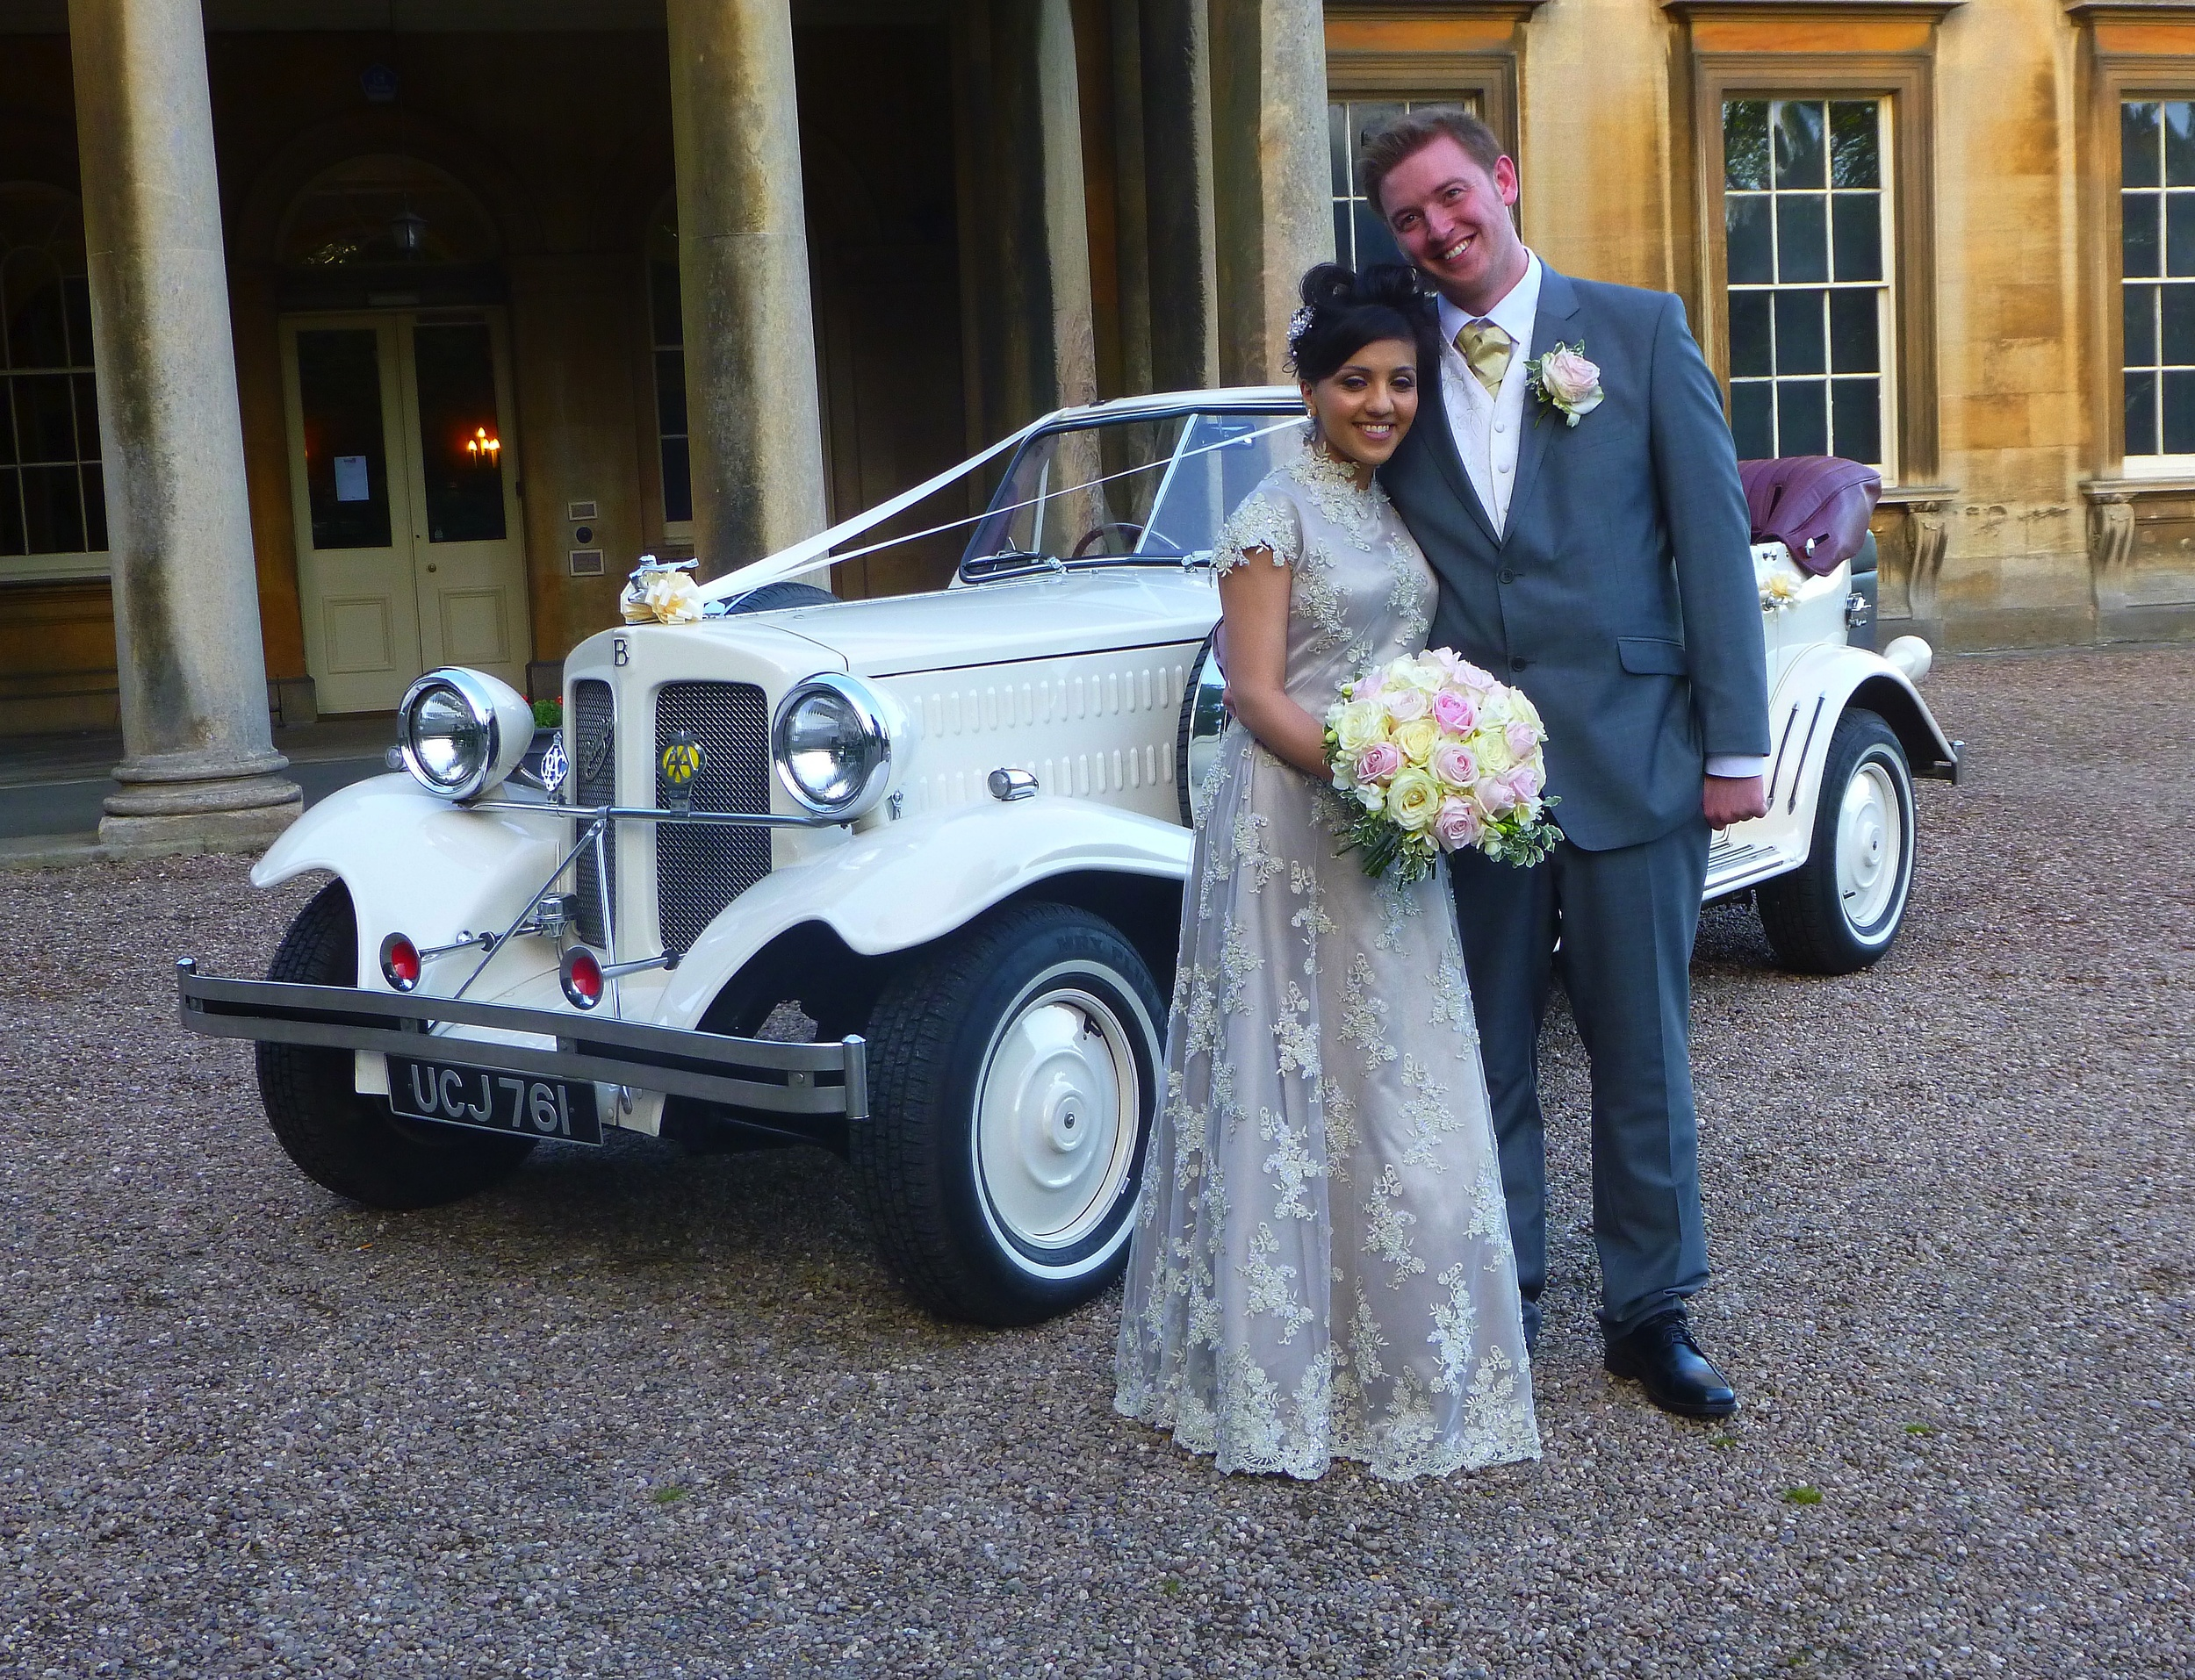 We are not usually involved with weddings in the evenings. An exception was made to transport Fahimah & Michael to Leicester following their wedding at Prestwold Hall, Loughborough. A lovely occasion in perfect weather. I will be at Prestwold again next week.